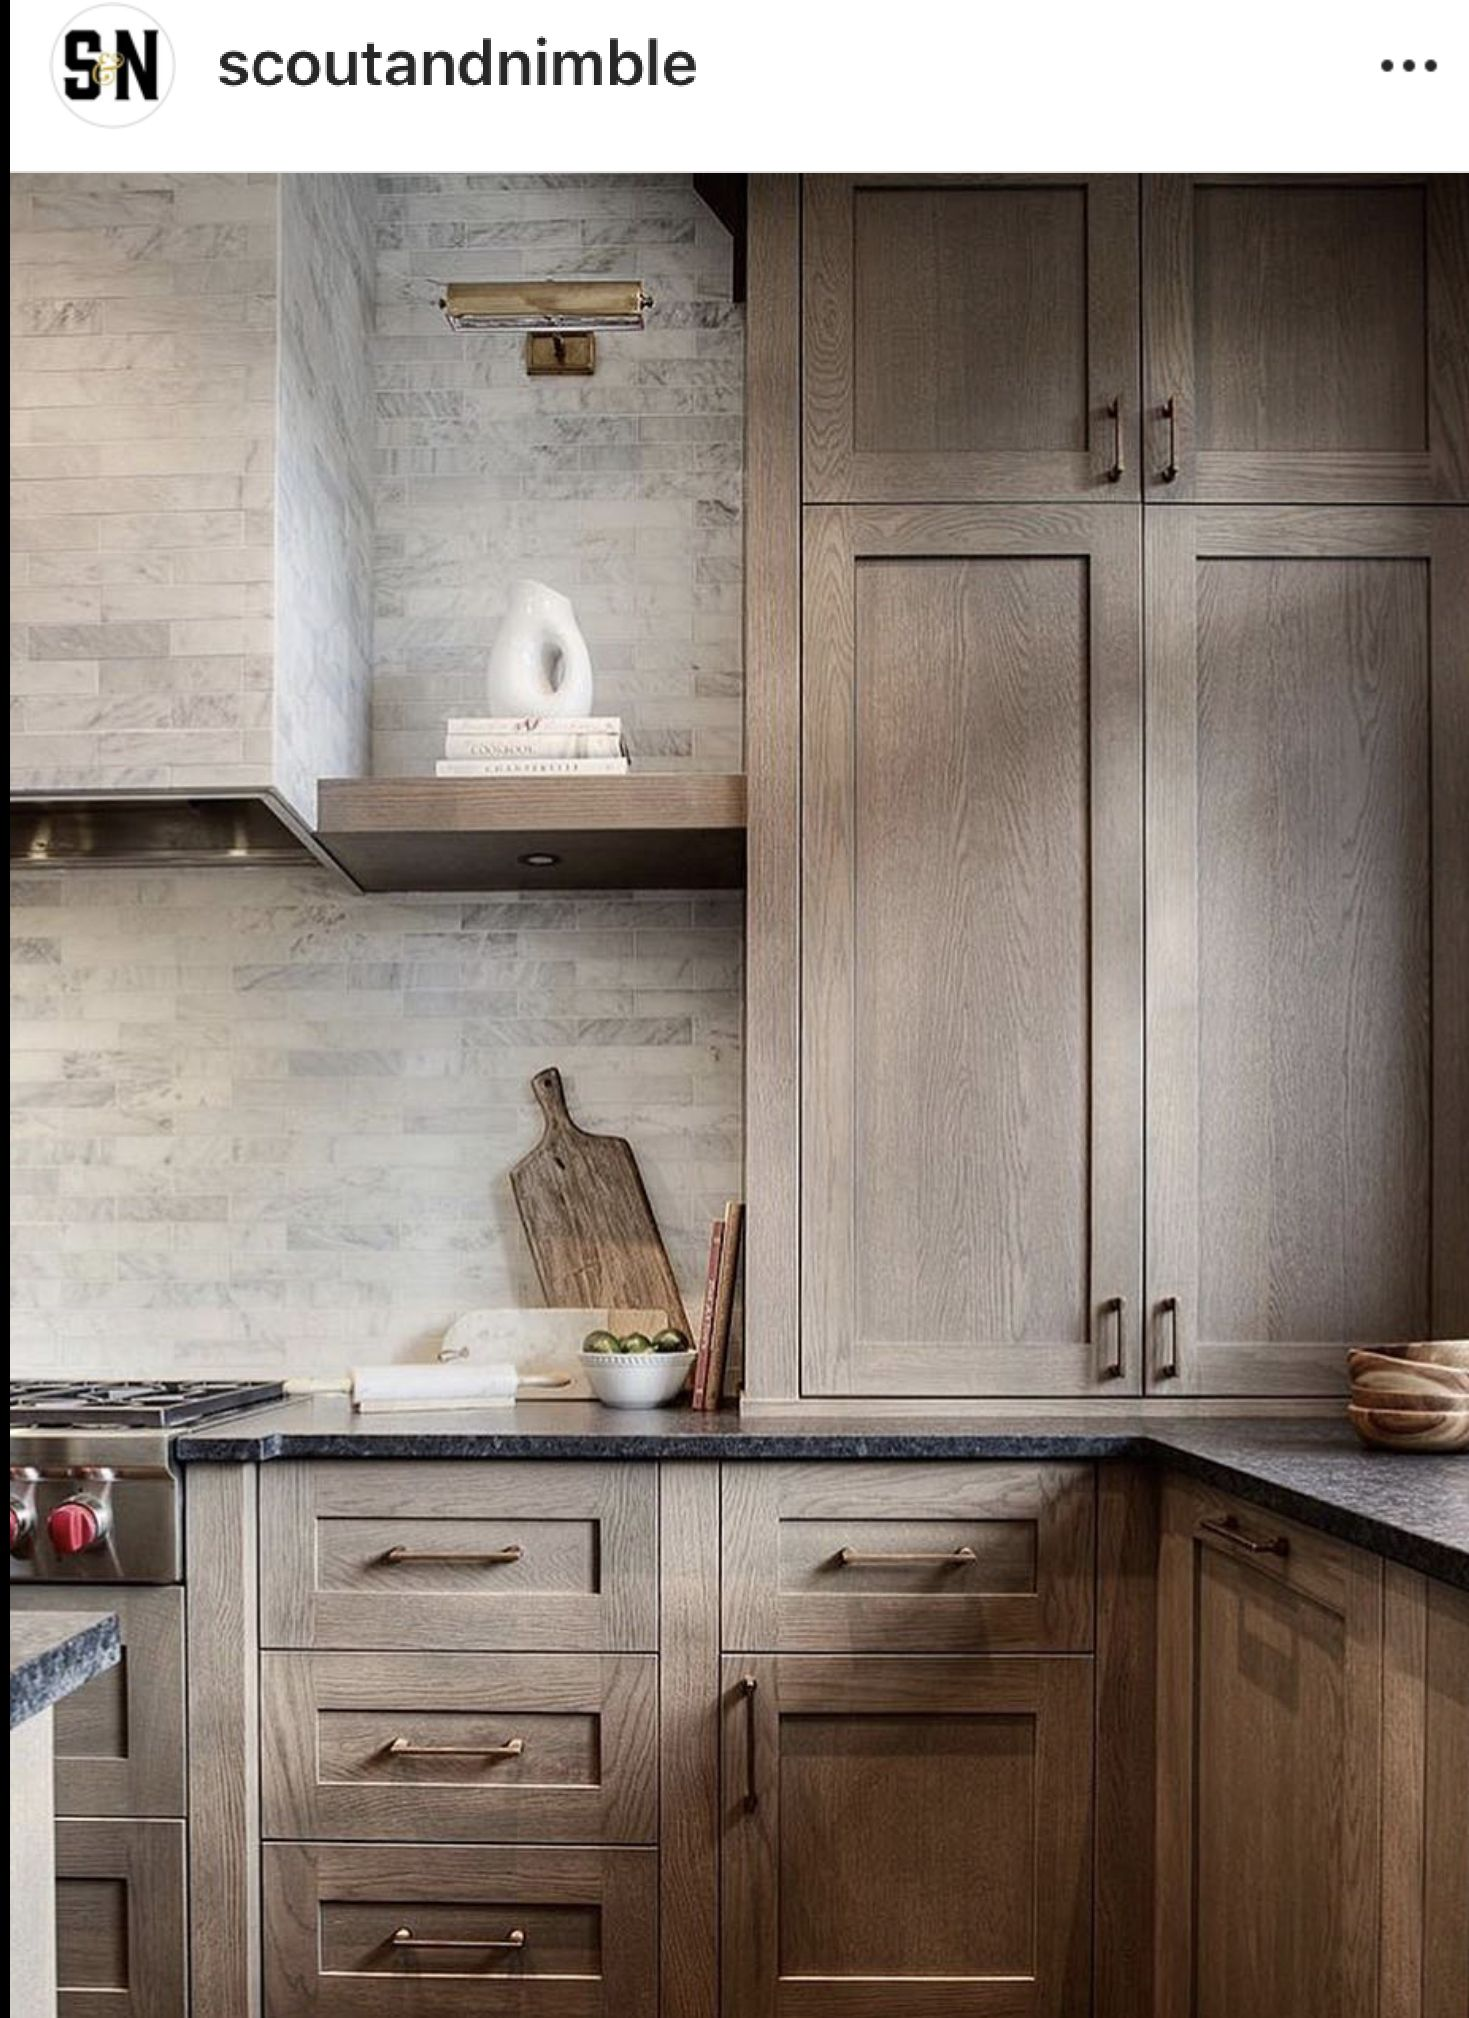 Pin By Tanman99 On Kitchens Rustic Kitchen Cabinets Black Kitchen Countertops Kitchen Cabinet Trends